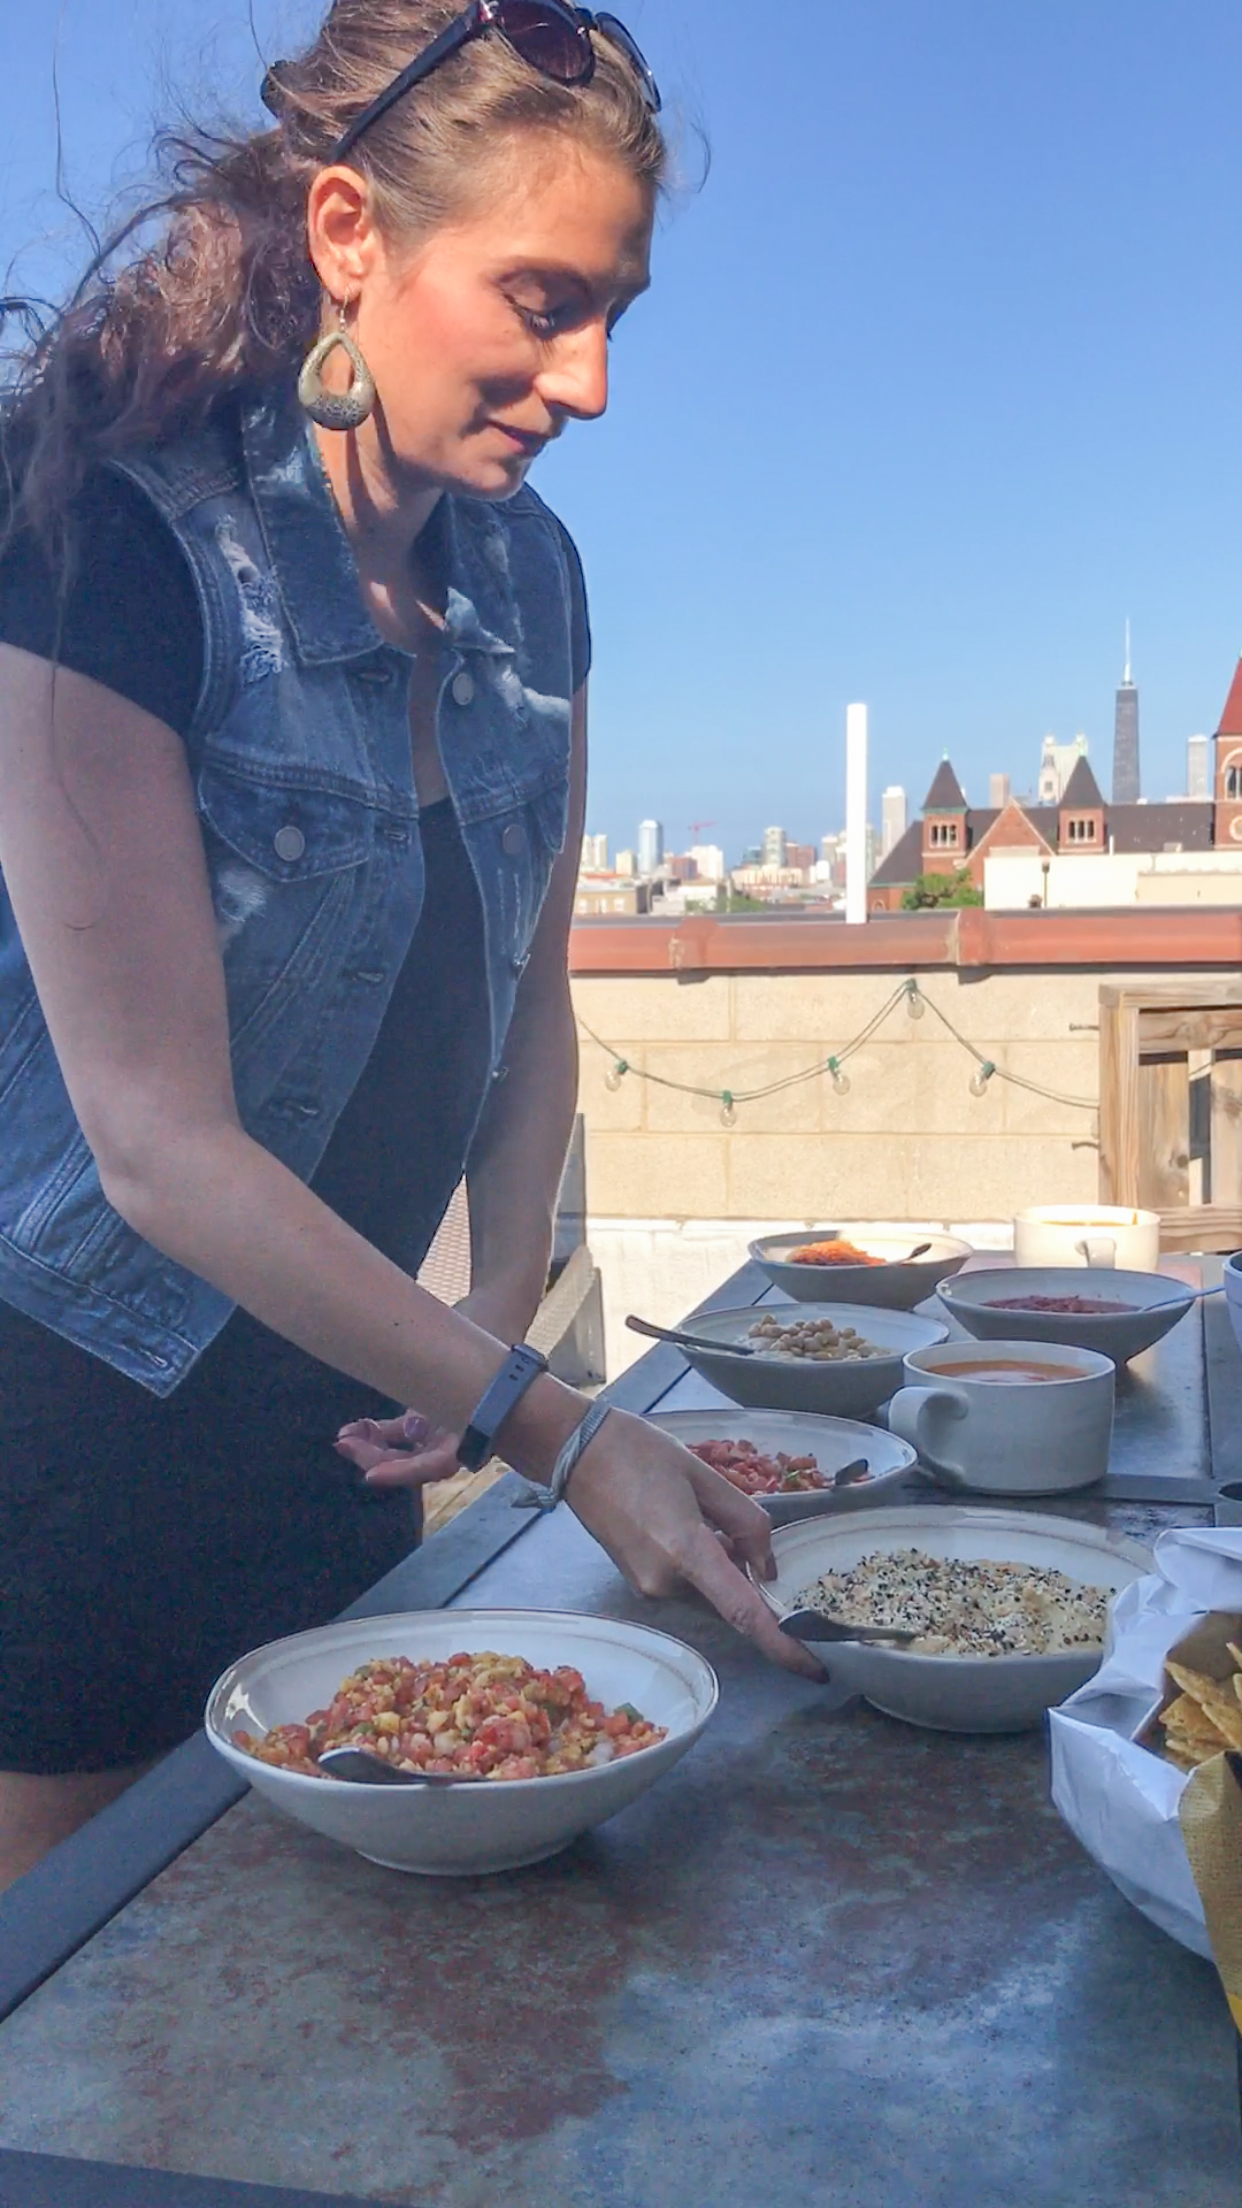 Shalva on our Chicago rooftop serving hummus, salsa, queso and veggies.